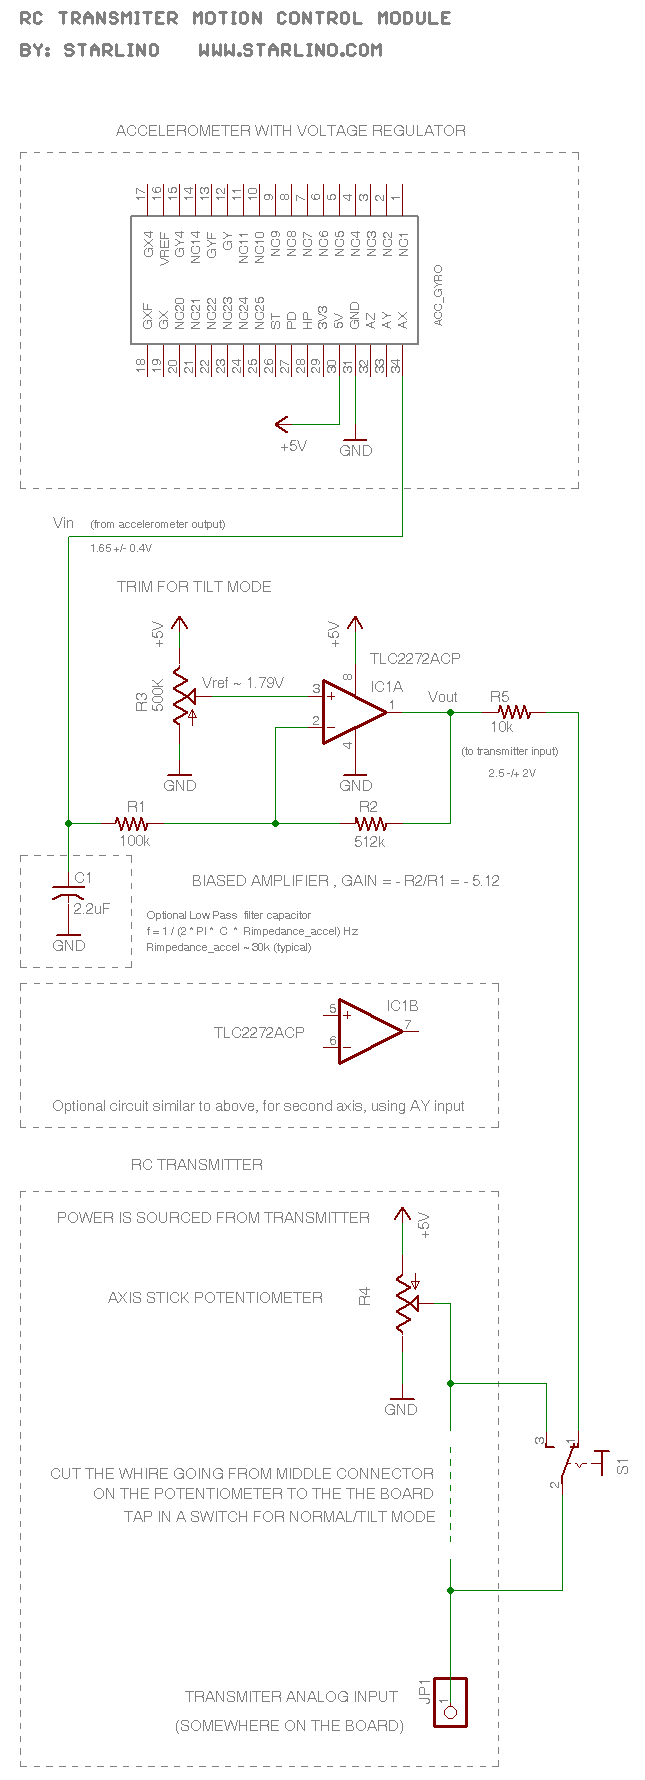 rc_transmitter_motion_control_schematic_full.png